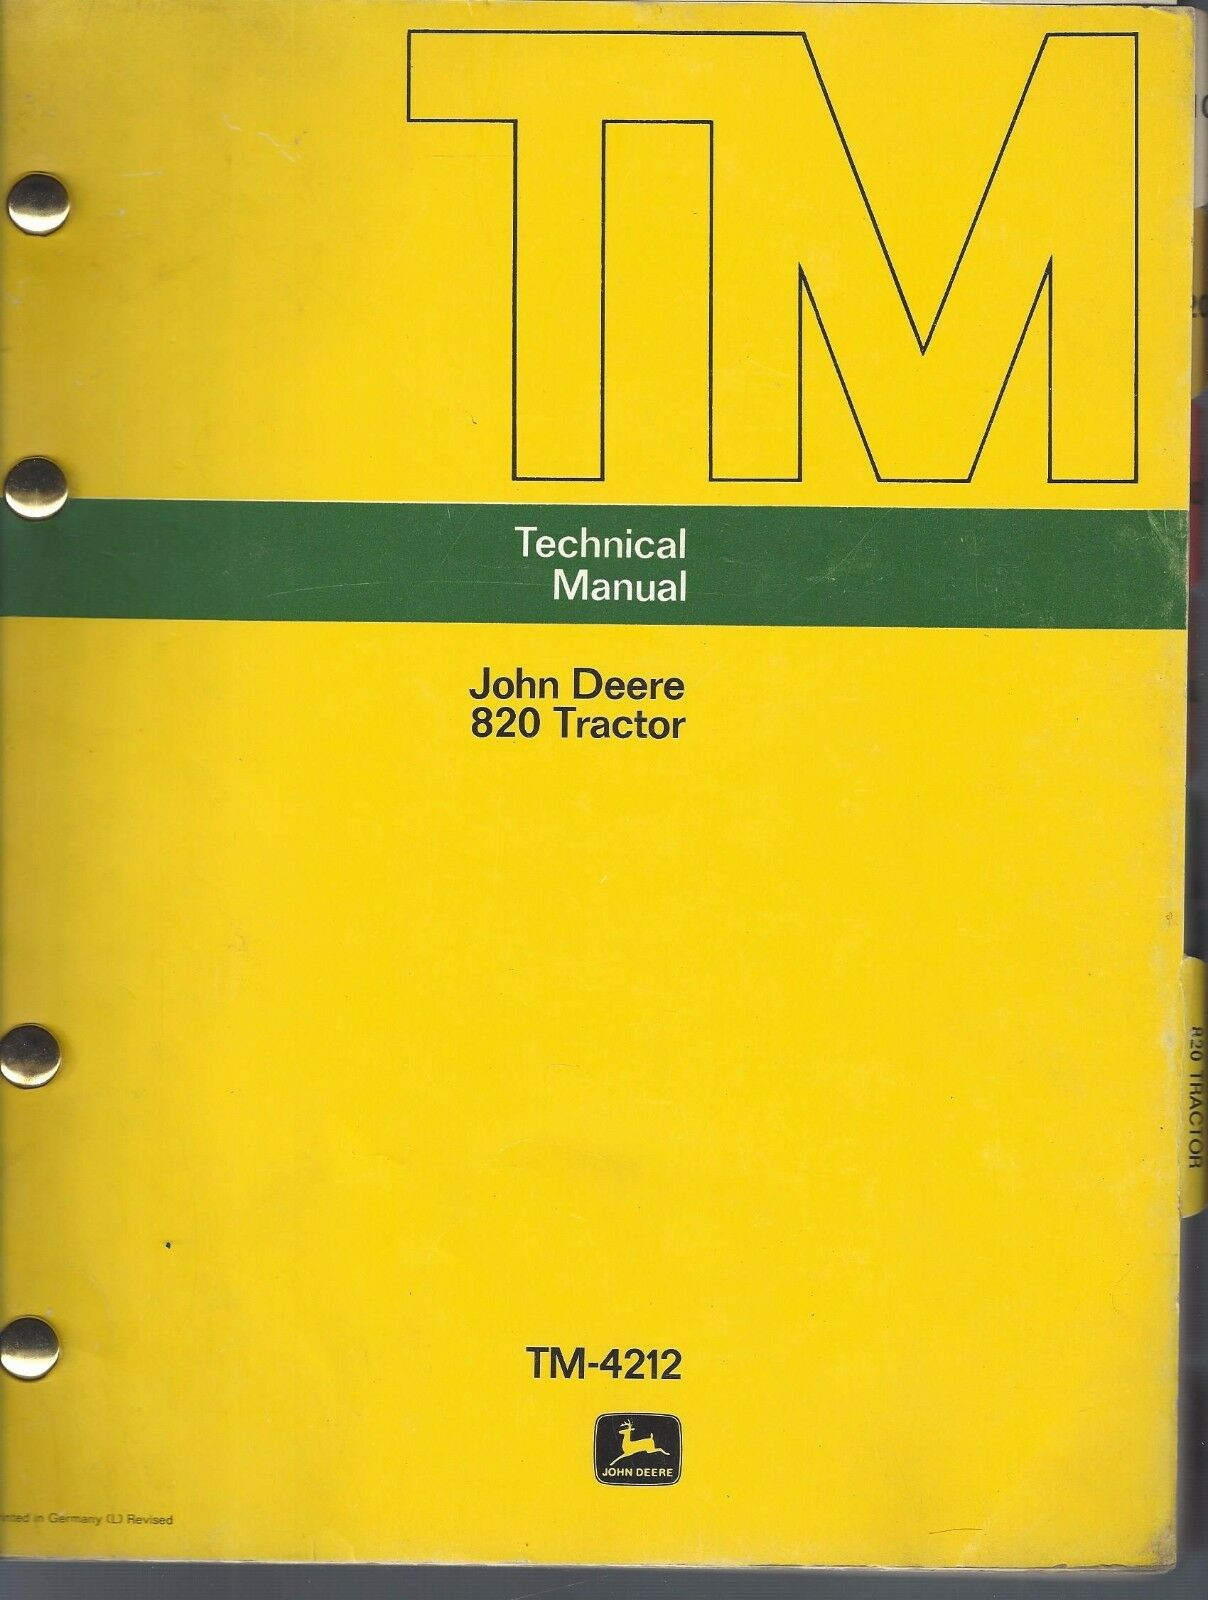 JOHN DEERE TECHNICAL MANUAL 820 TRACTOR 3CYL TM-4212 SERVICE REPAIR F3a 1  of 11Only 1 available ...